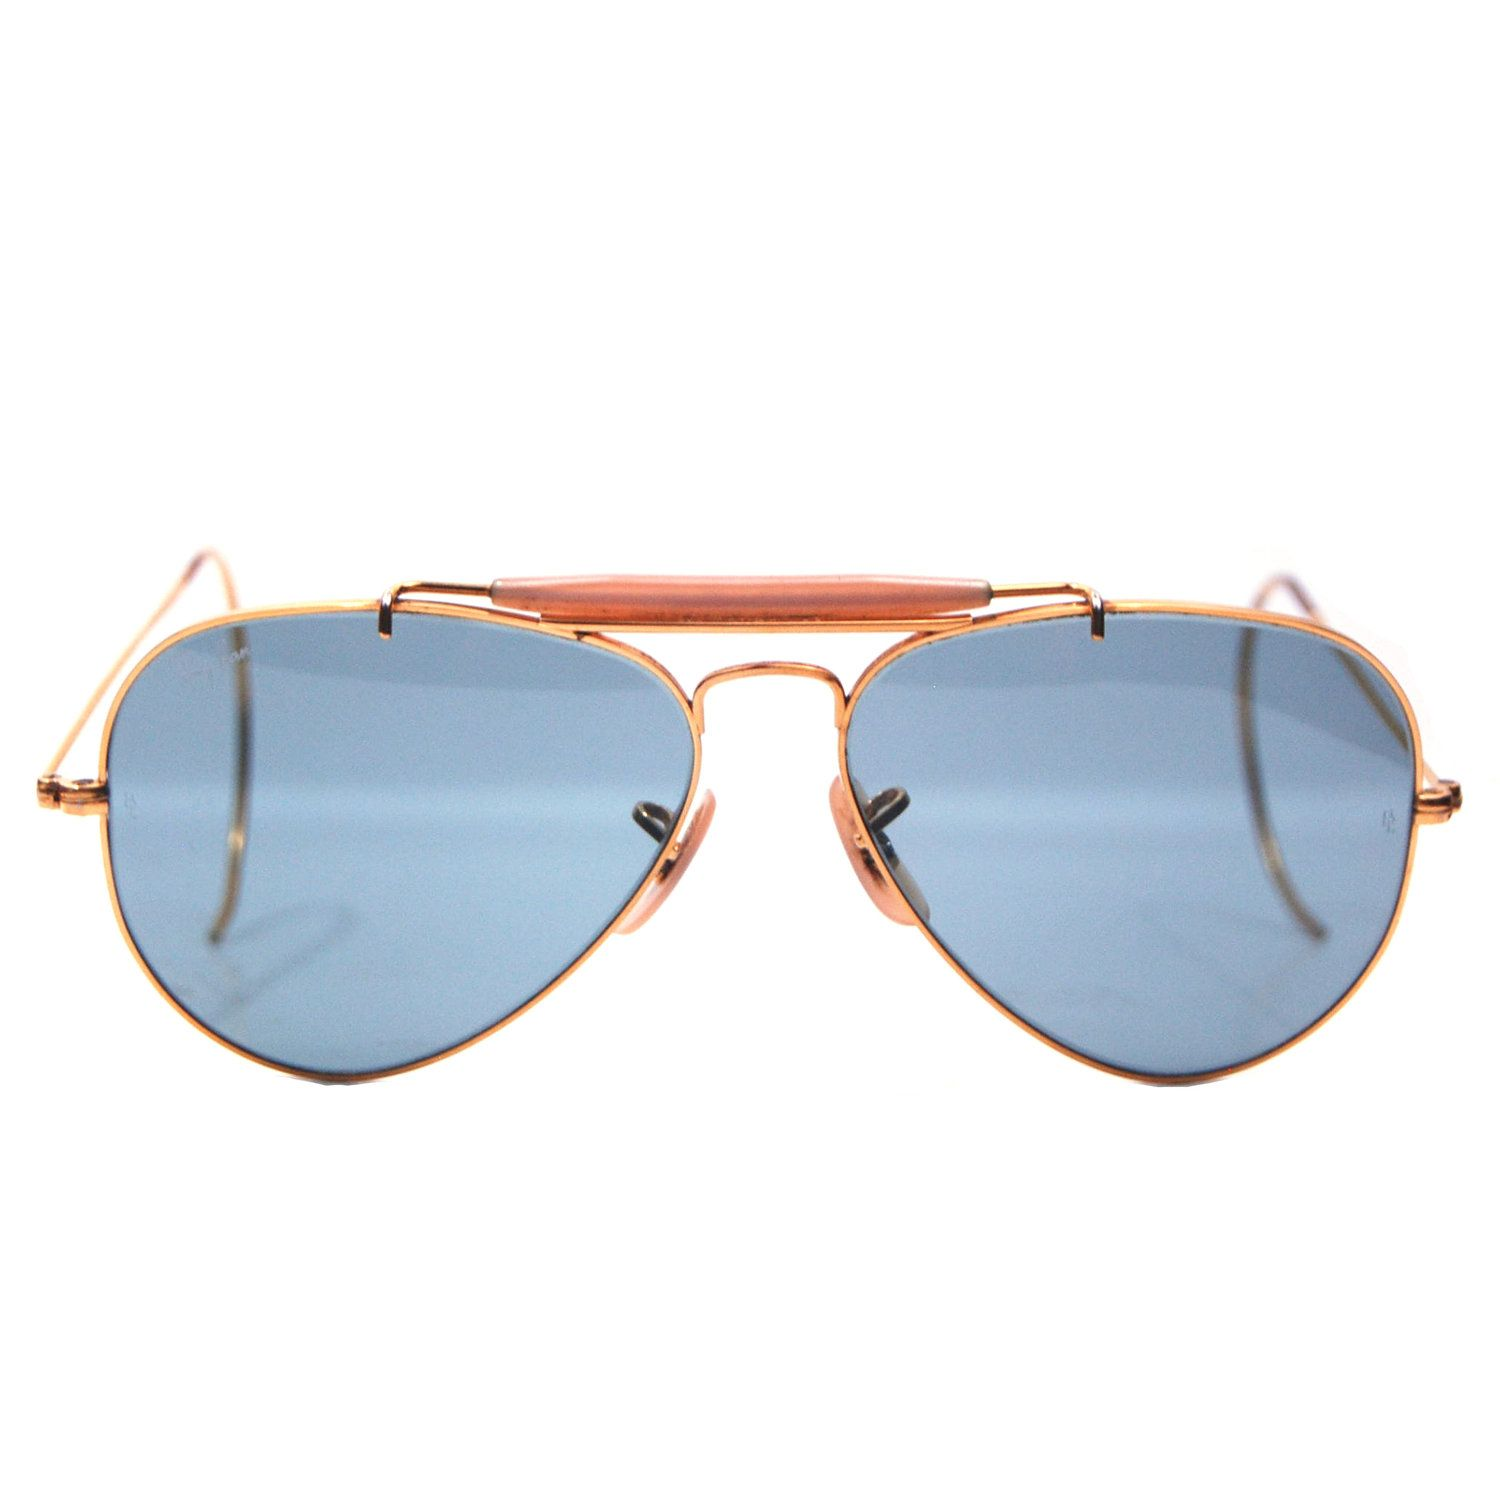 af28b07ed094 Vintage Ray Ban Bausch and Lomb Blue Changeable Sunglasses 58mm.  259.00